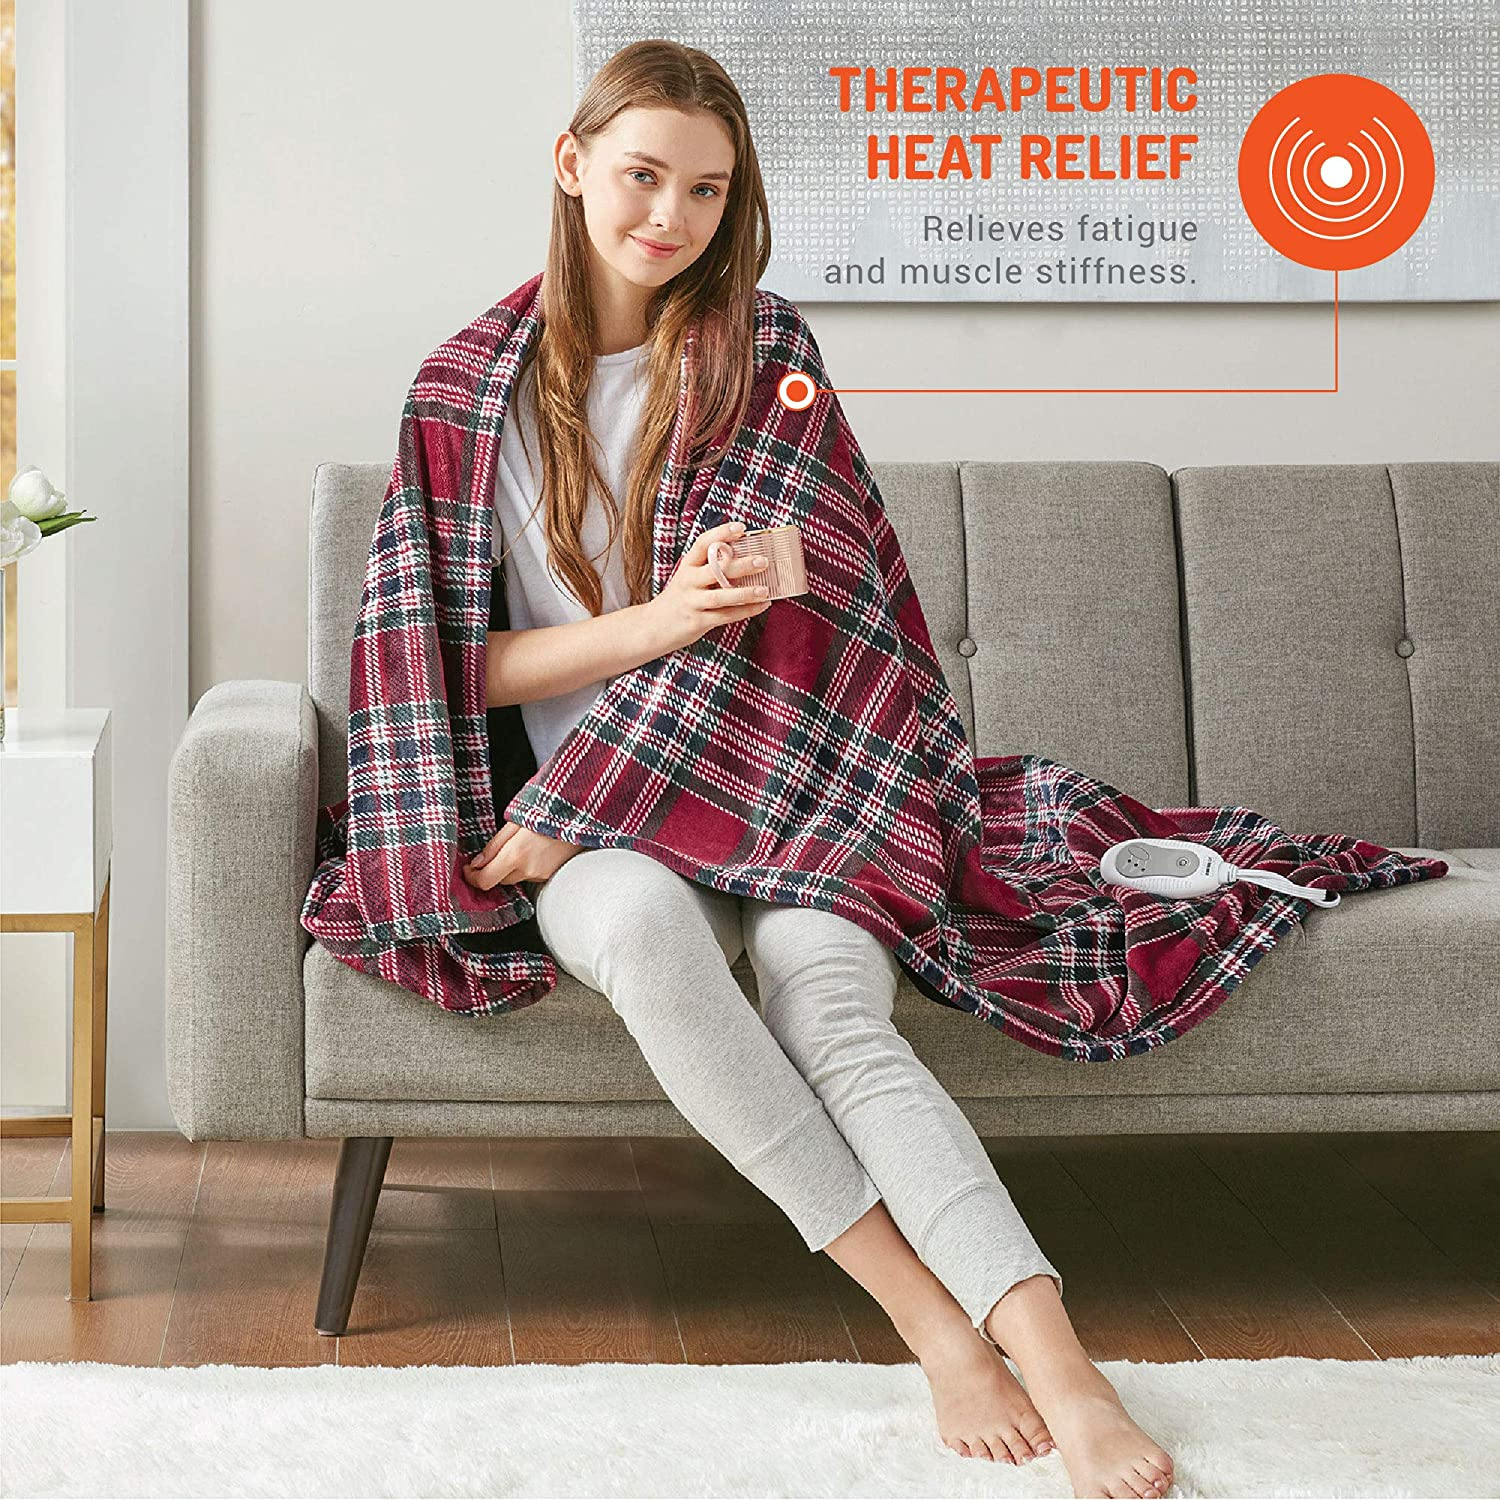 Plush Microlight Degrees of Comfort Electric Heated Throw Blanket 3 Heat Settings Easy to Wash 50x60 Beige UL Certified /& Low EMF Radiation 6ft Cord and 3ft Controller Cable Fast Heating